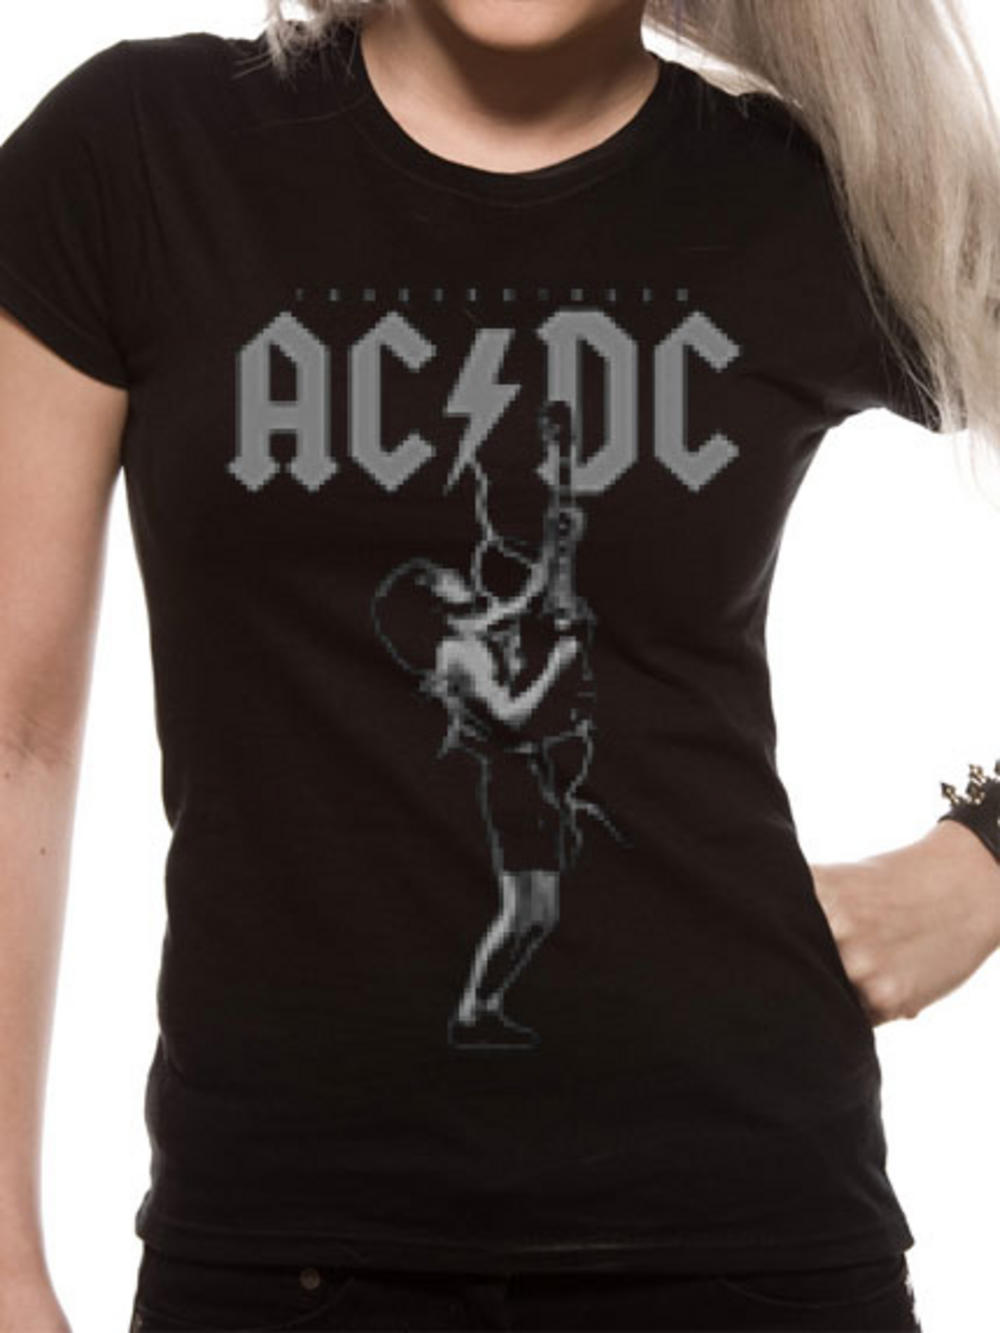 AC/DC (Thunderstruck Tour) Womens T-shirt Pre-order Released W/C 31st August